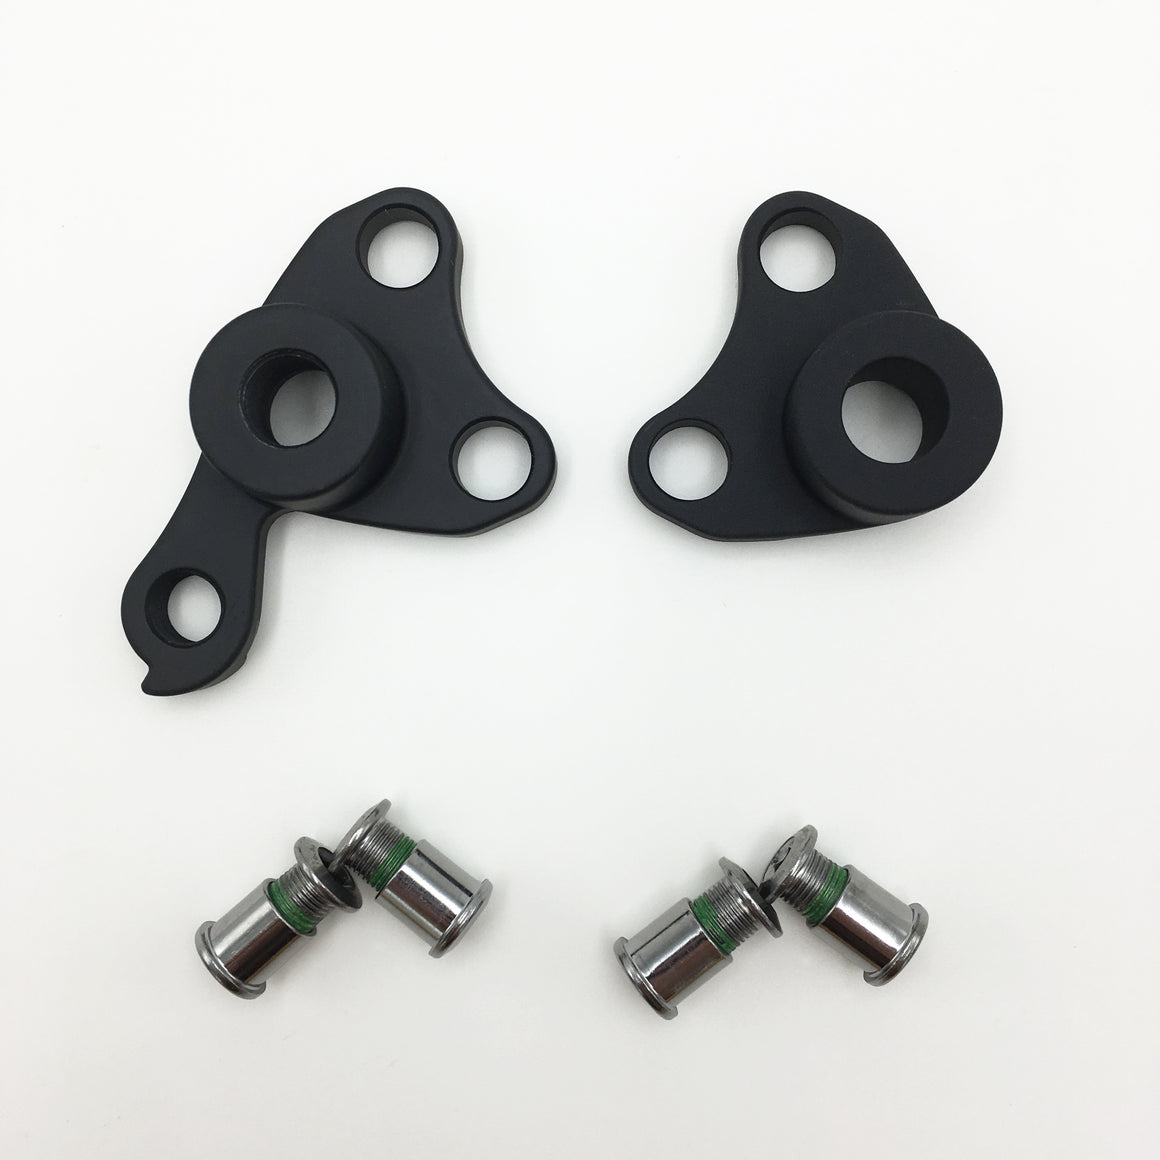 Thru-axle modular dropouts only - without eyelets - 142/12 - 1.5 thread pitch